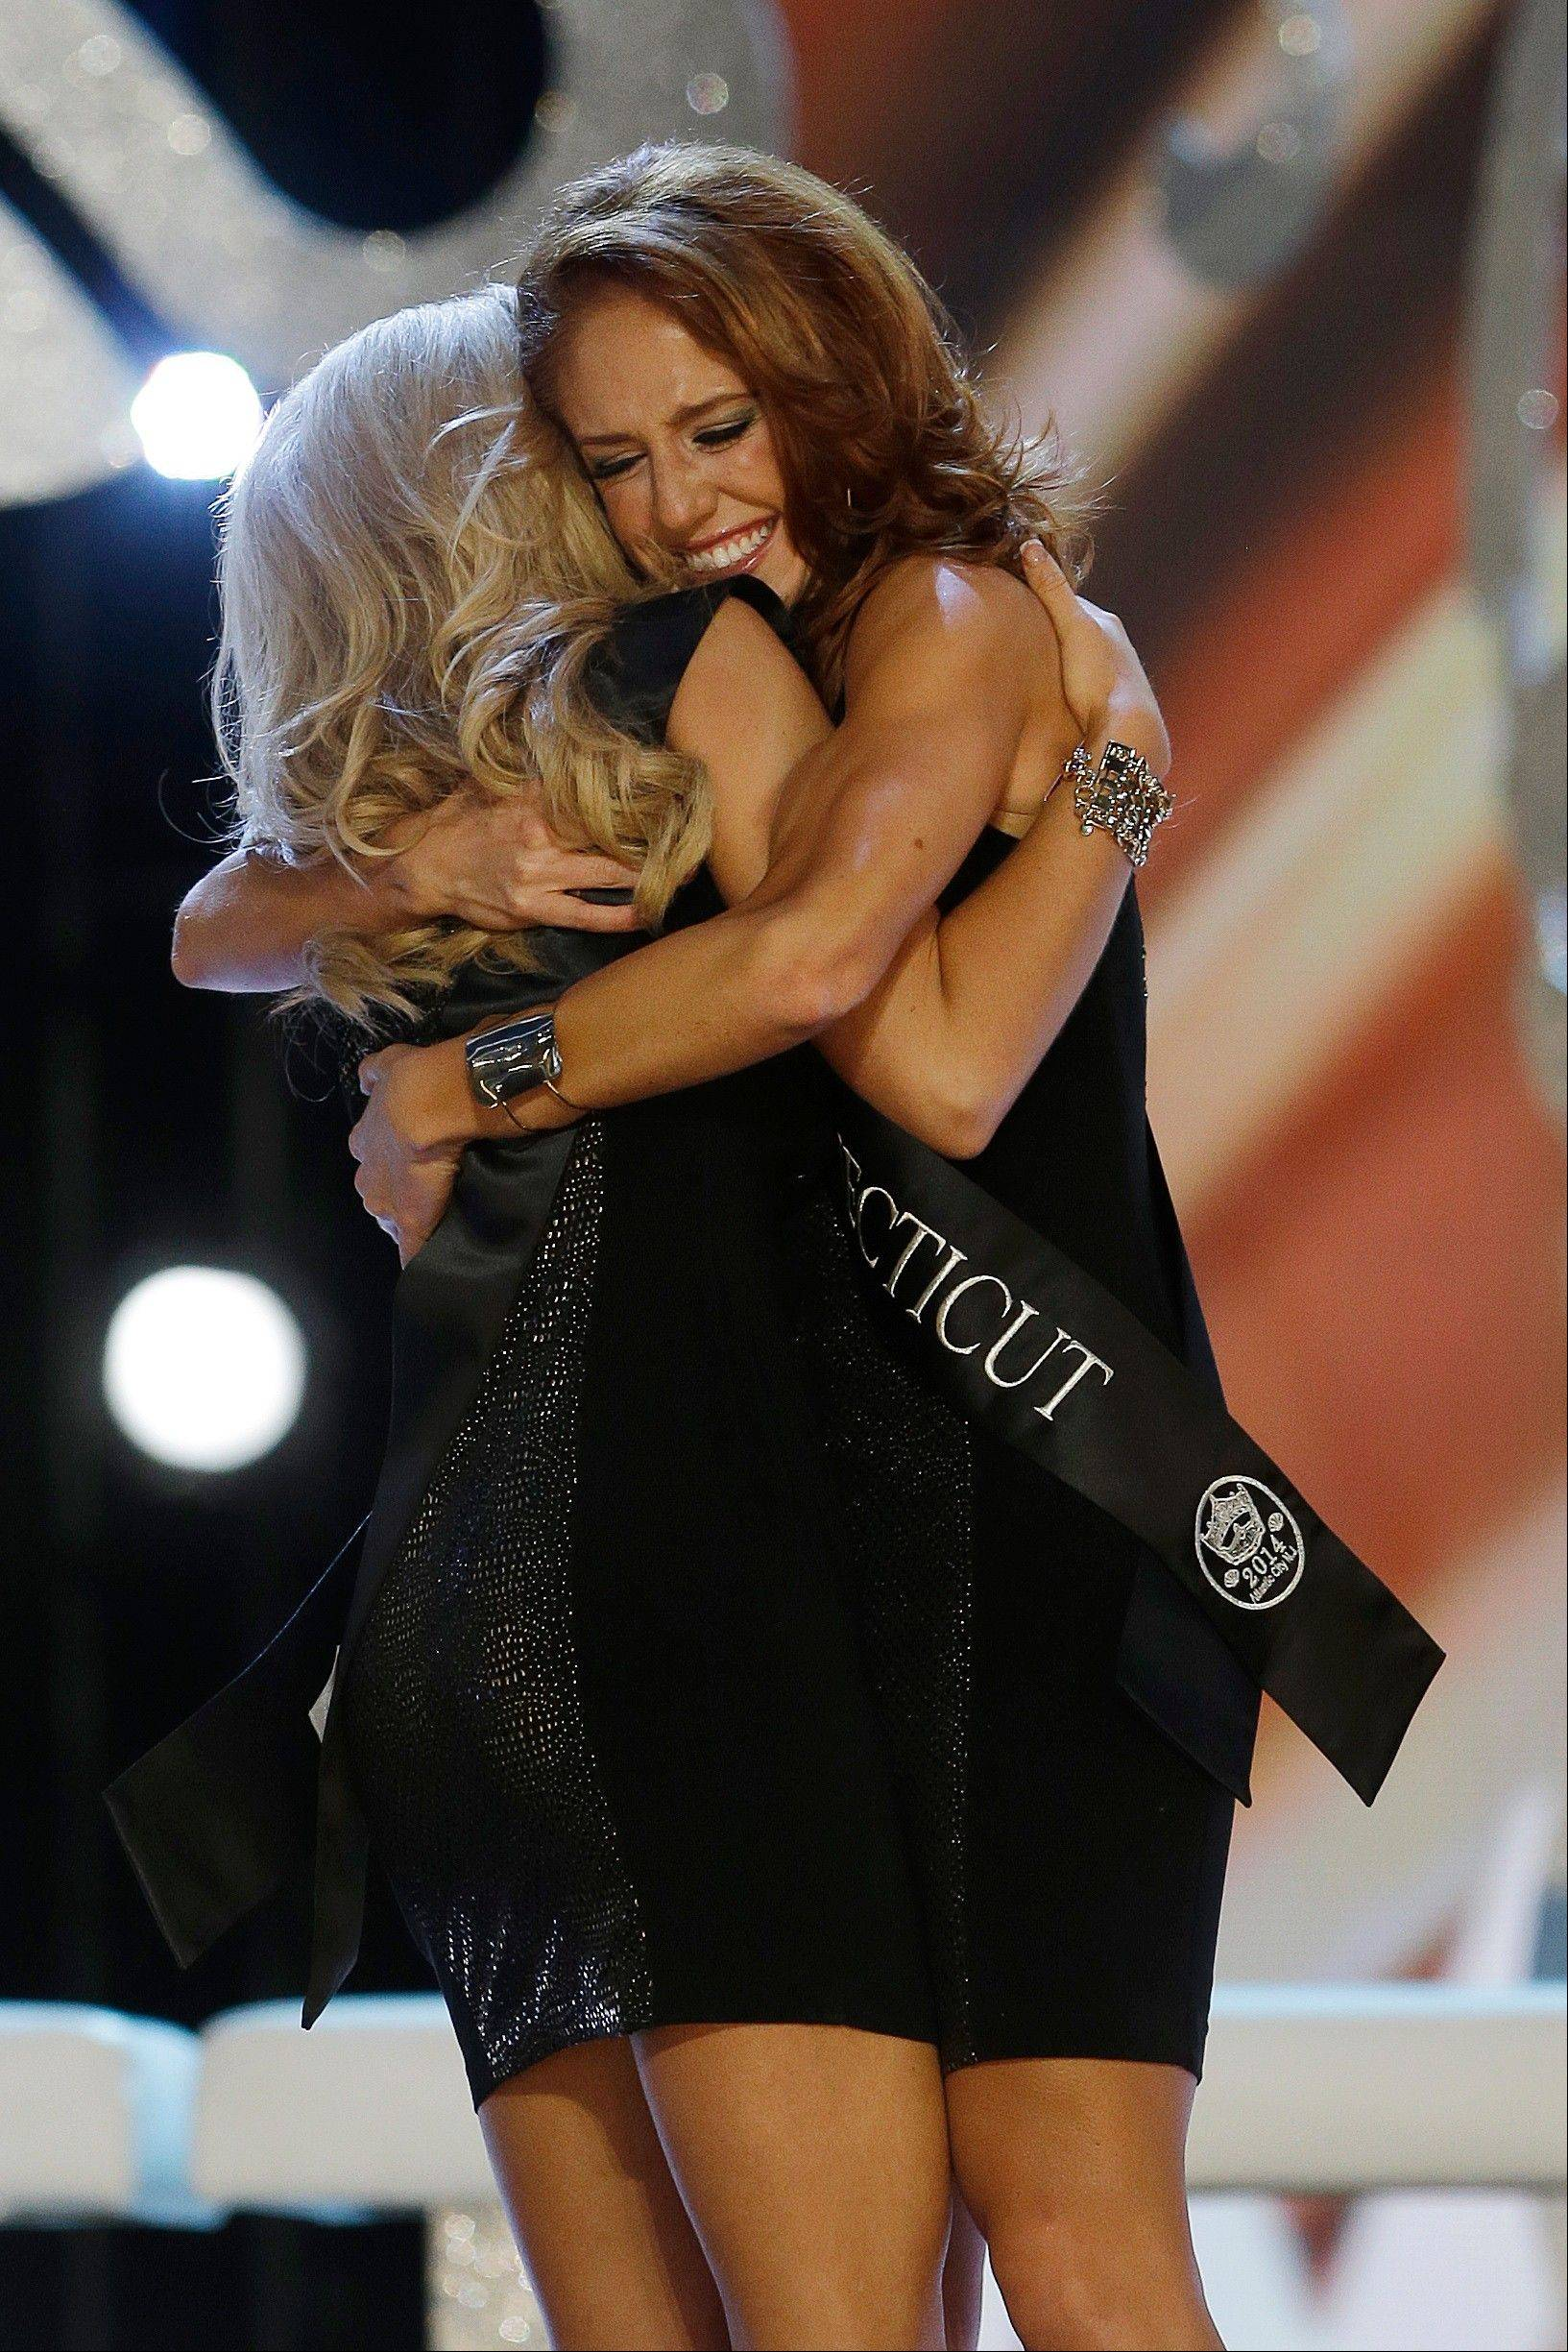 Miss Connecticut Kaitlyn Tarpey, right, hugs Miss Georgia Carly Mathis during the Miss America 2014 pageant, Sunday, Sept. 15, 2013, in Atlantic City, N.J.